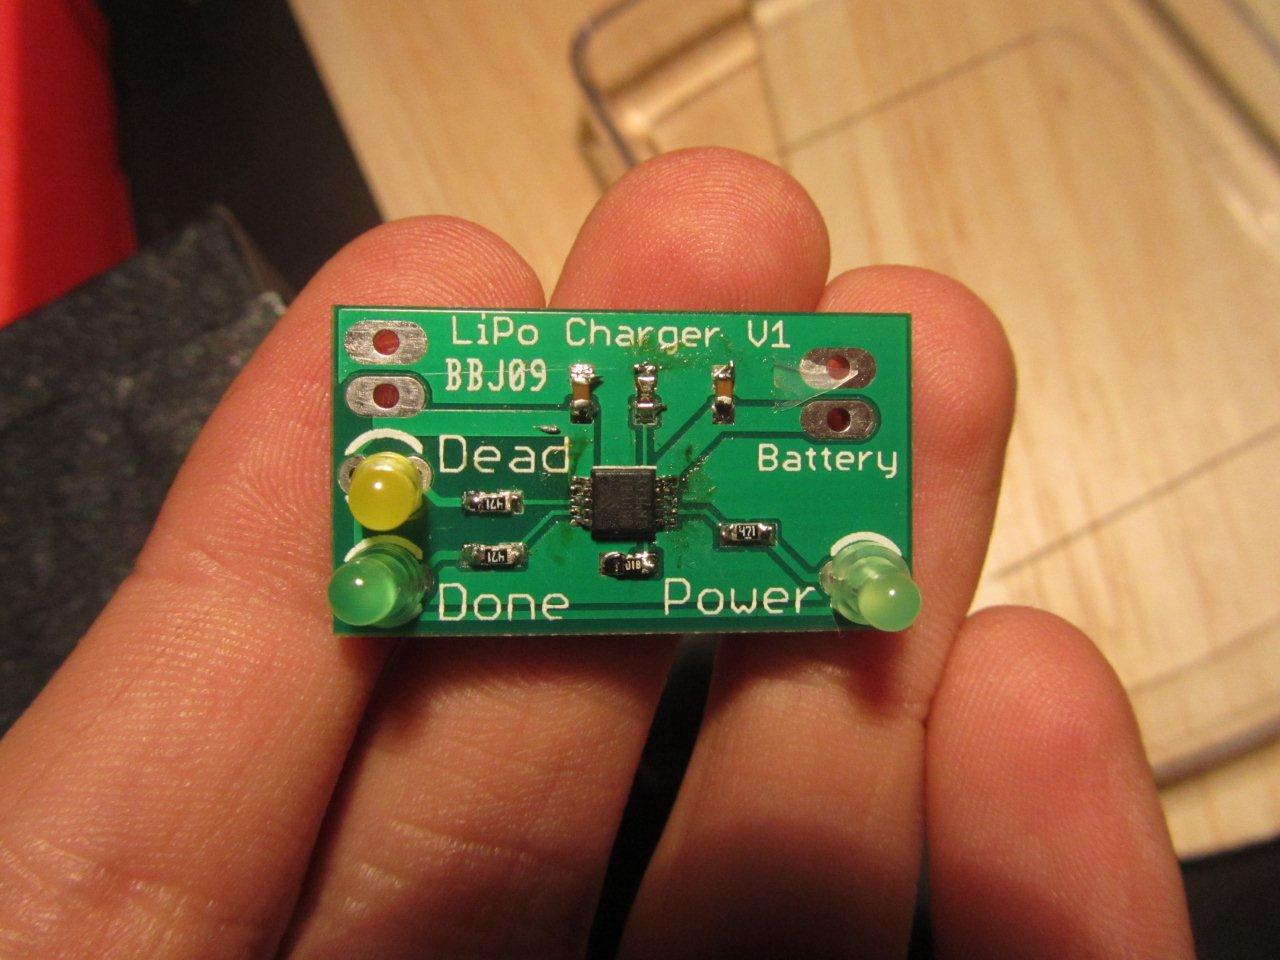 LiPo charger assembled